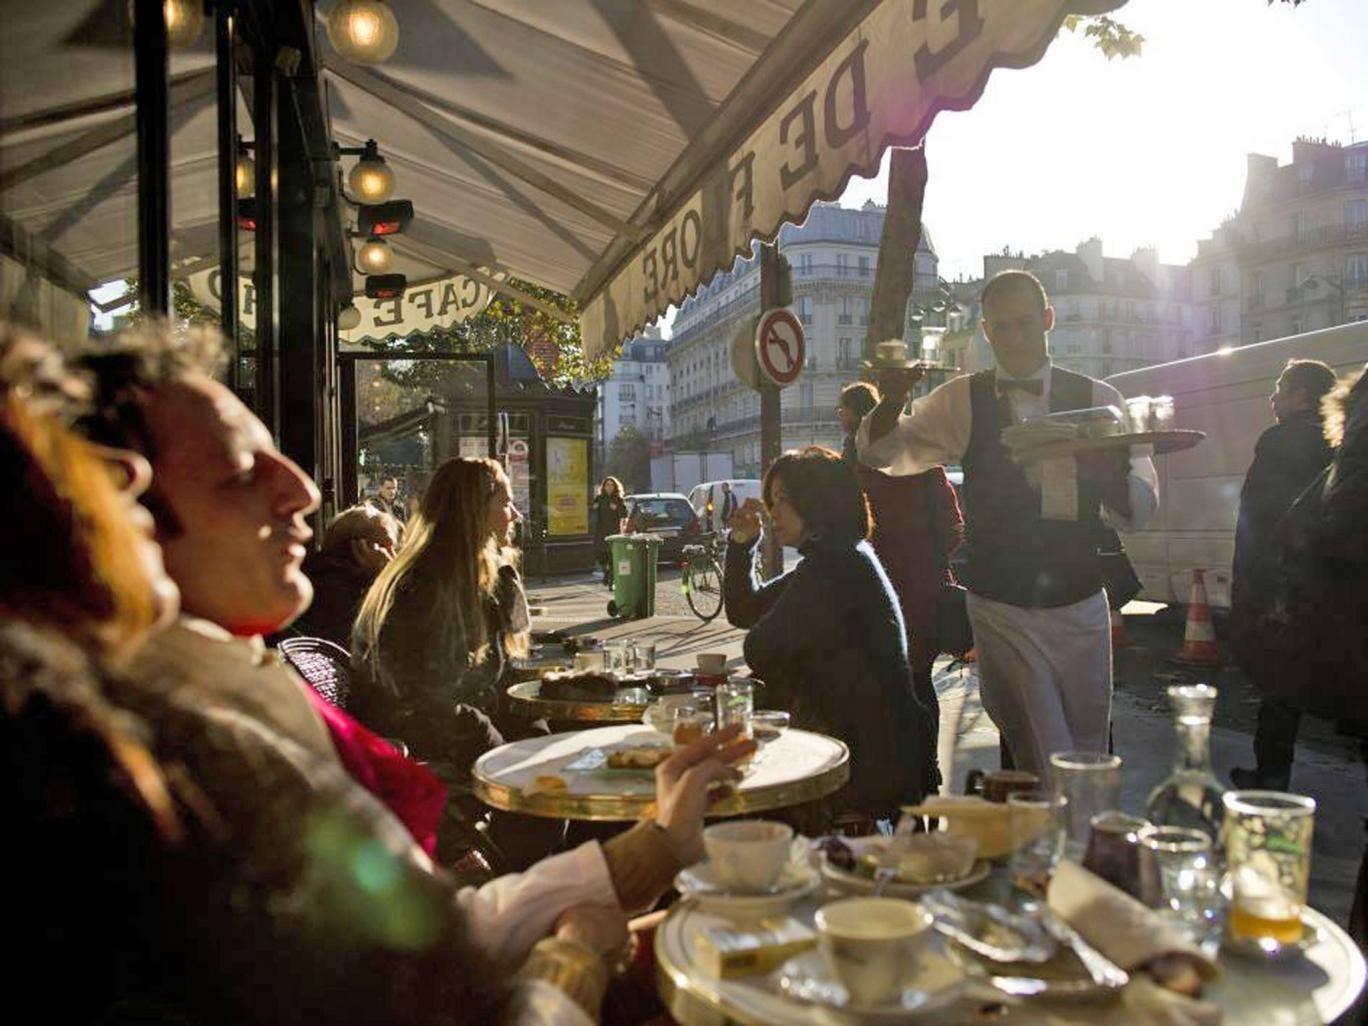 Café de Flore in Saint-Germain, where people come for a taste of Paris's literary past